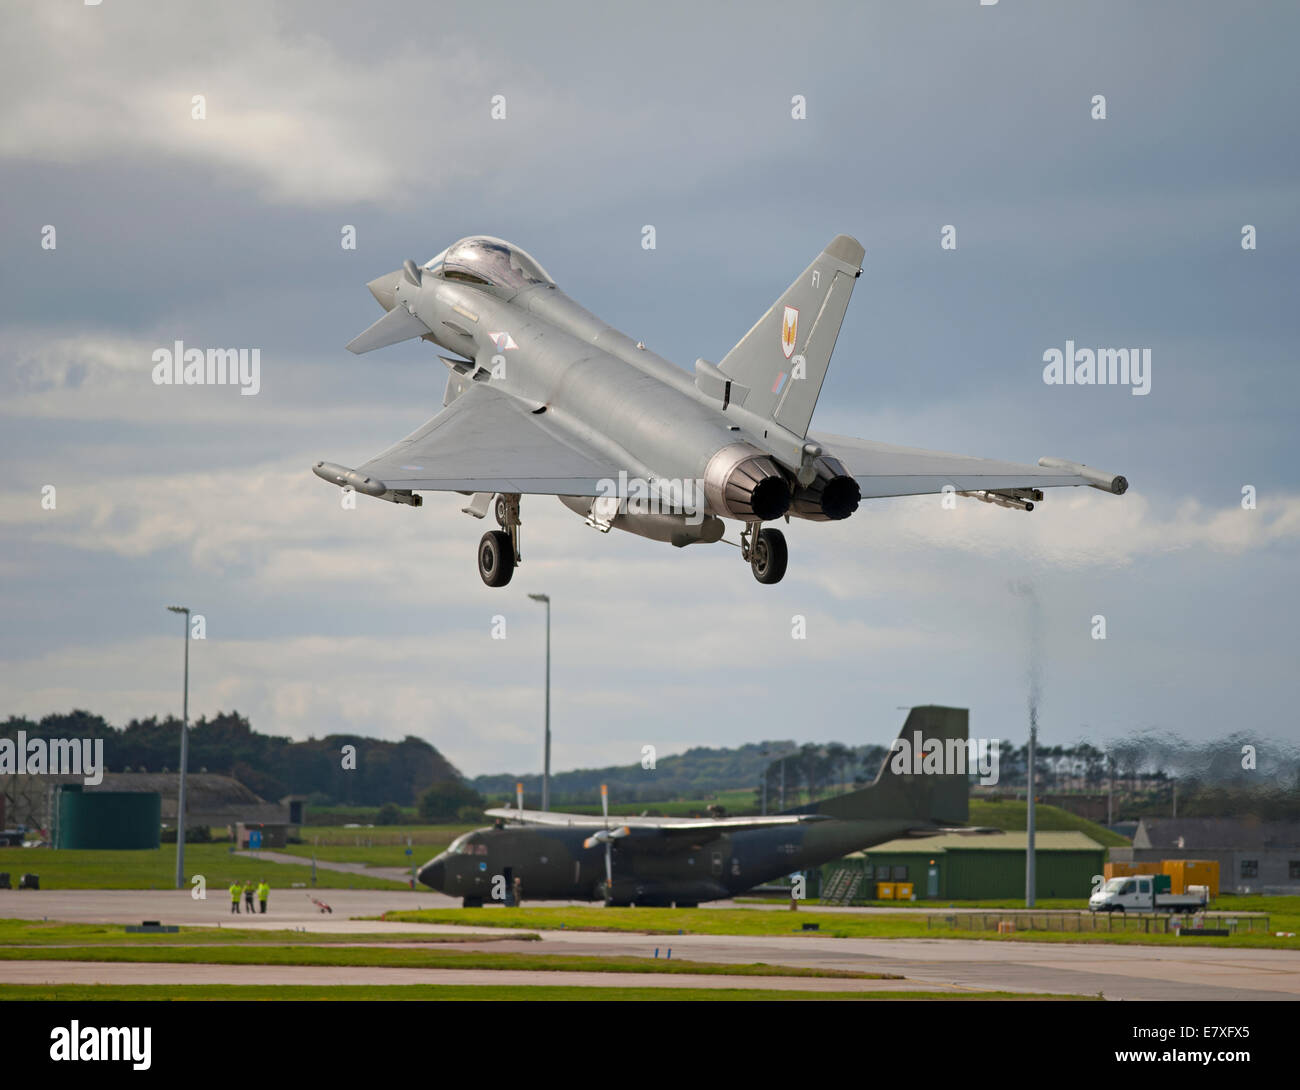 Eurofighter Typhoon FRG4 on approach to RAF Lossiemouth, Morayshire.  SCO 9135 - Stock Image